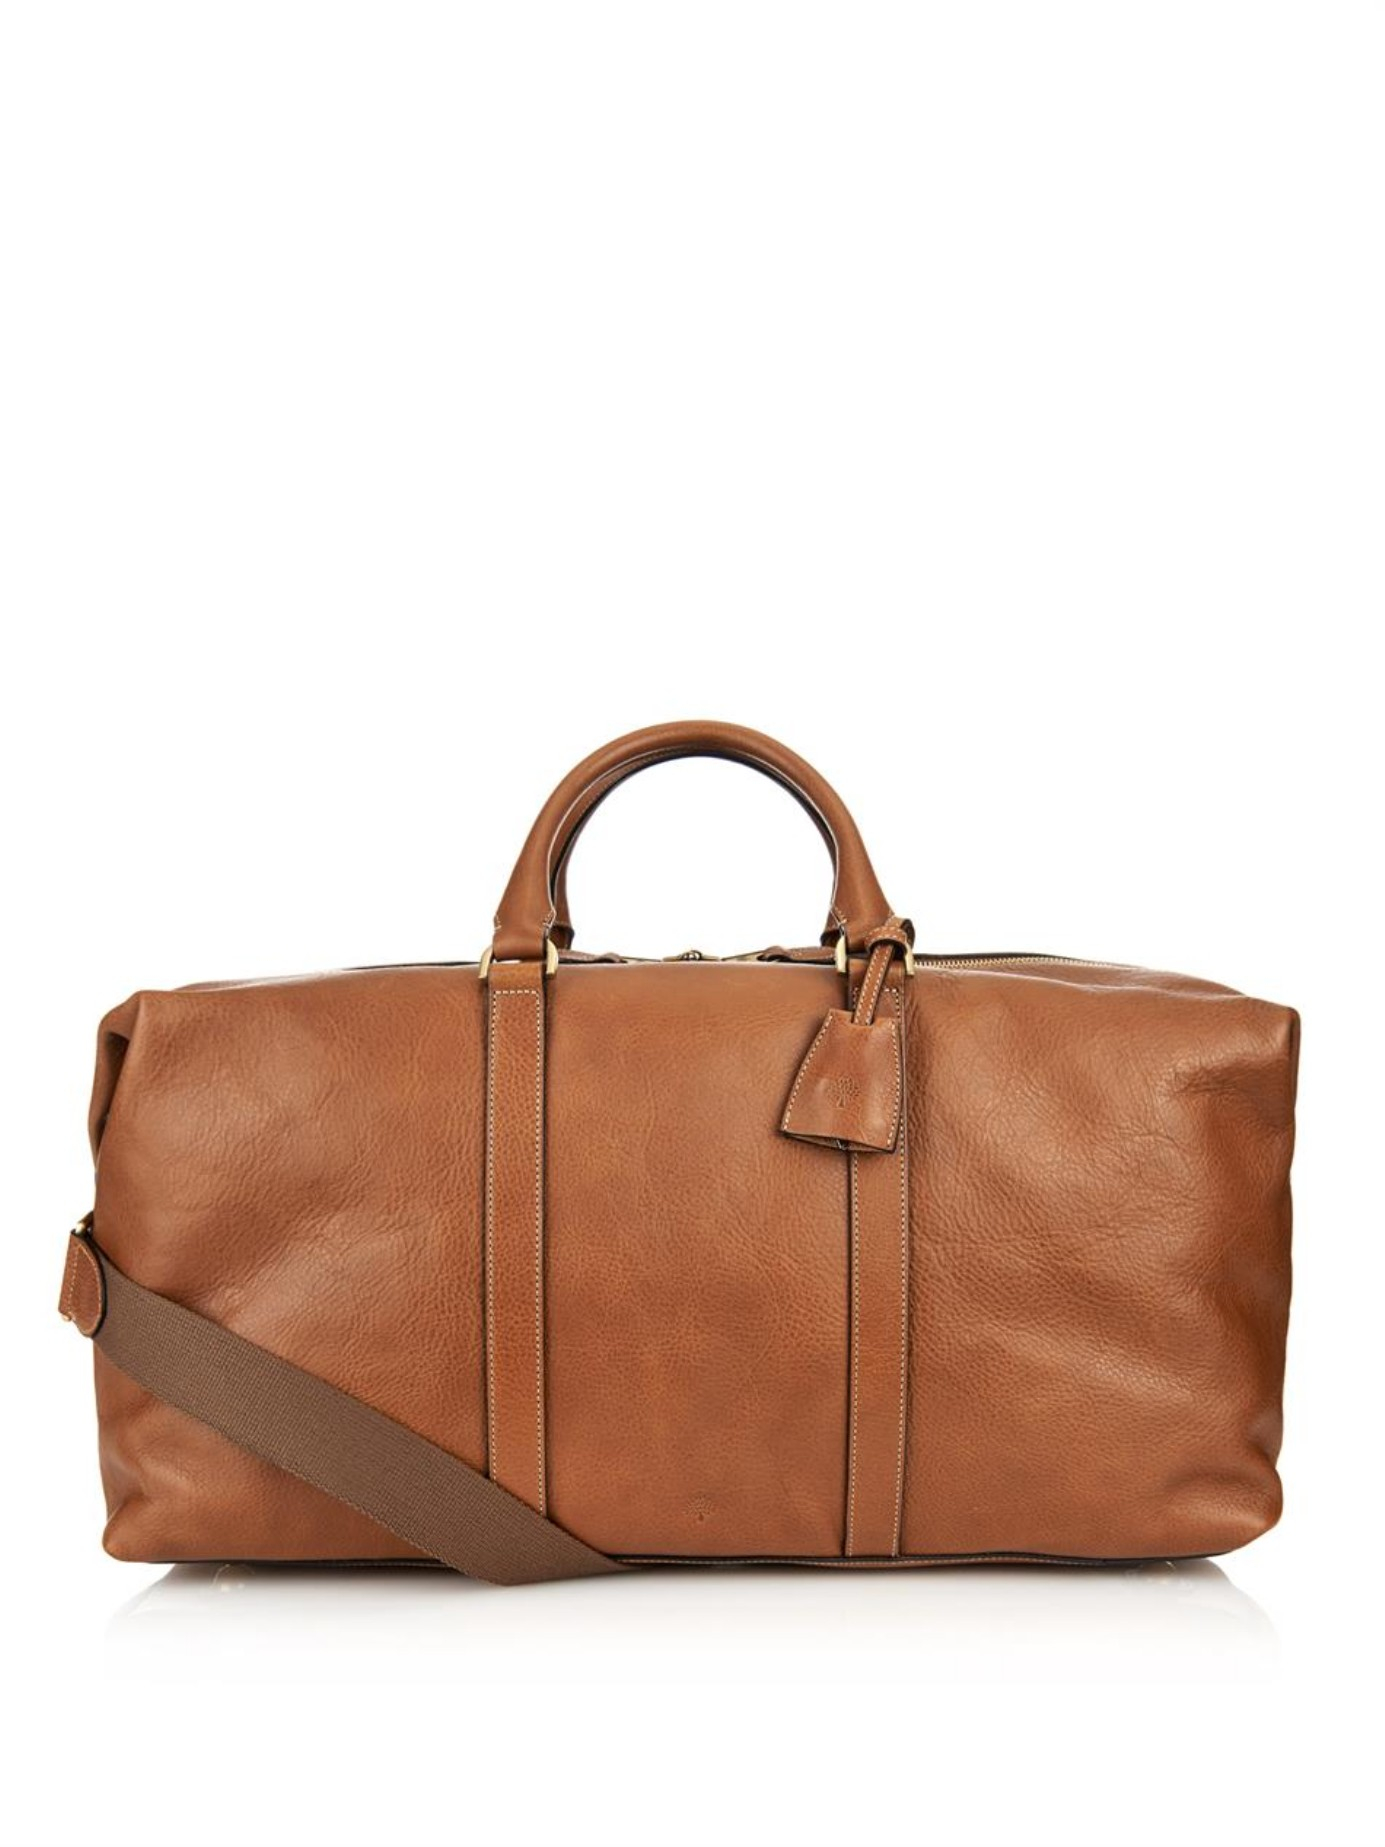 28a64a4f4521 ... uk lyst mulberry clipper leather weekend bag in brown for men aed5a  ed977